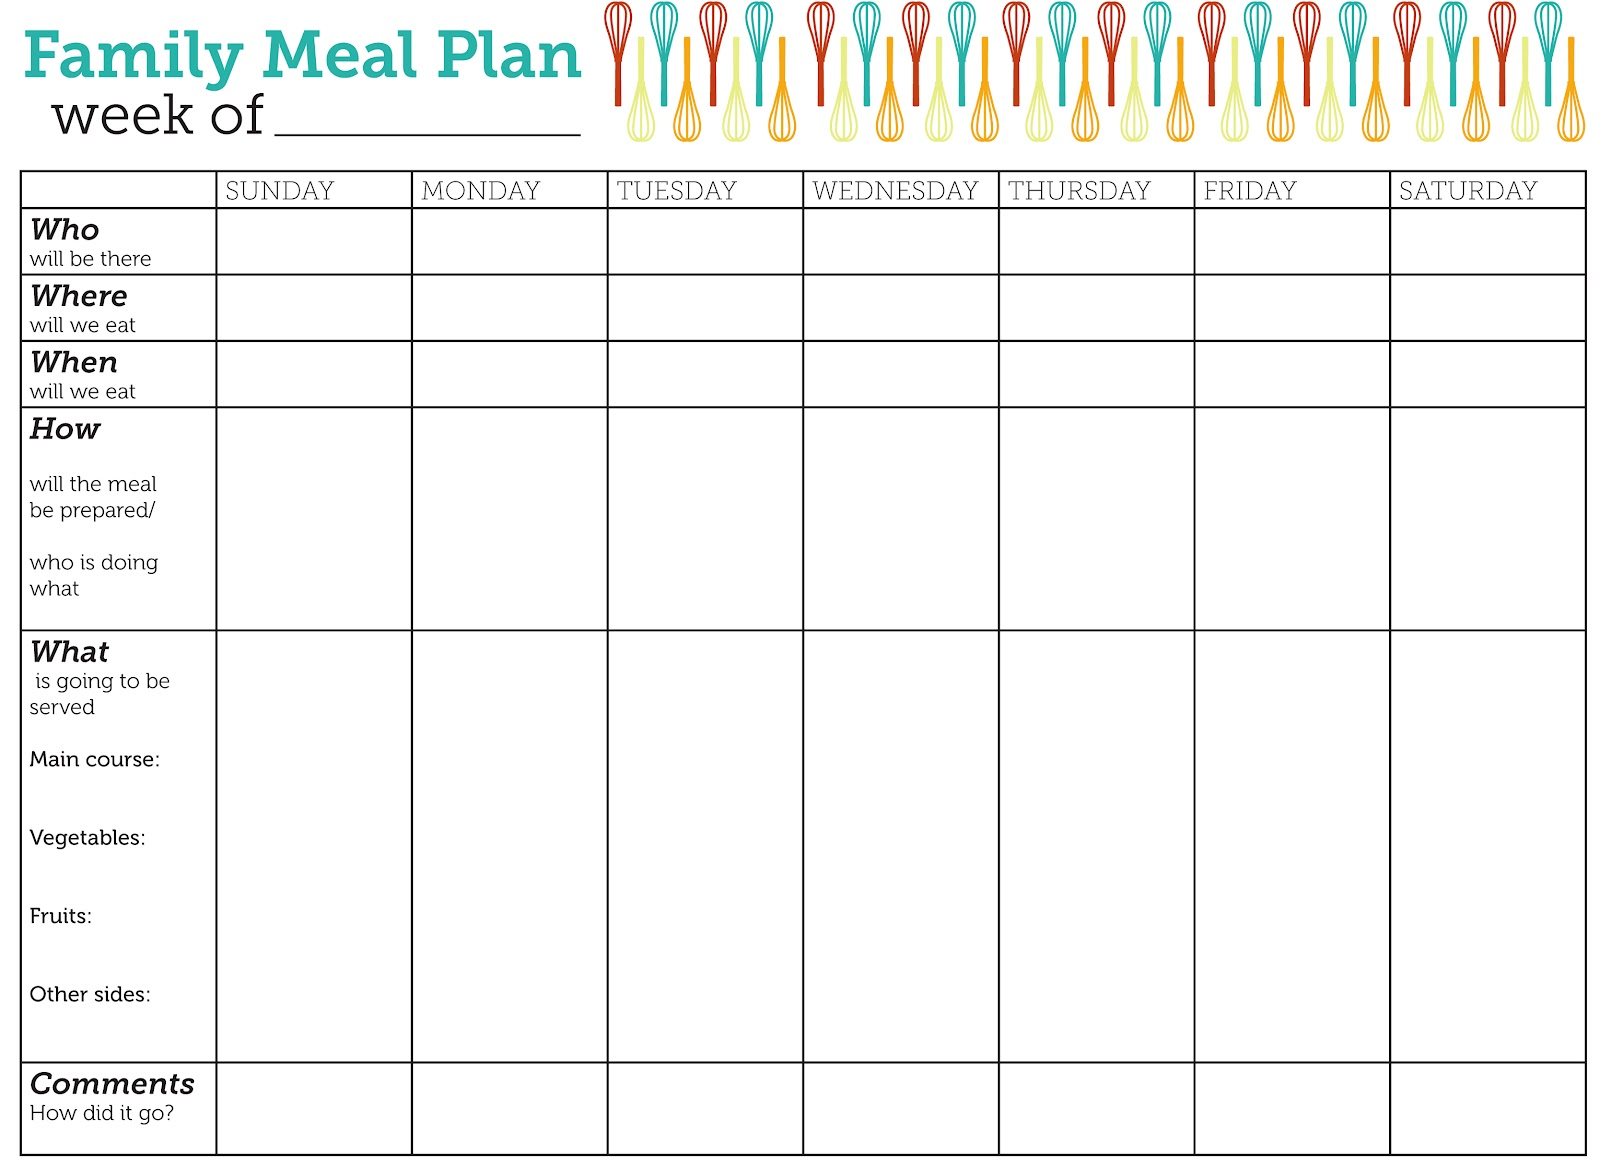 Design Lass Family Meal Plan Printable